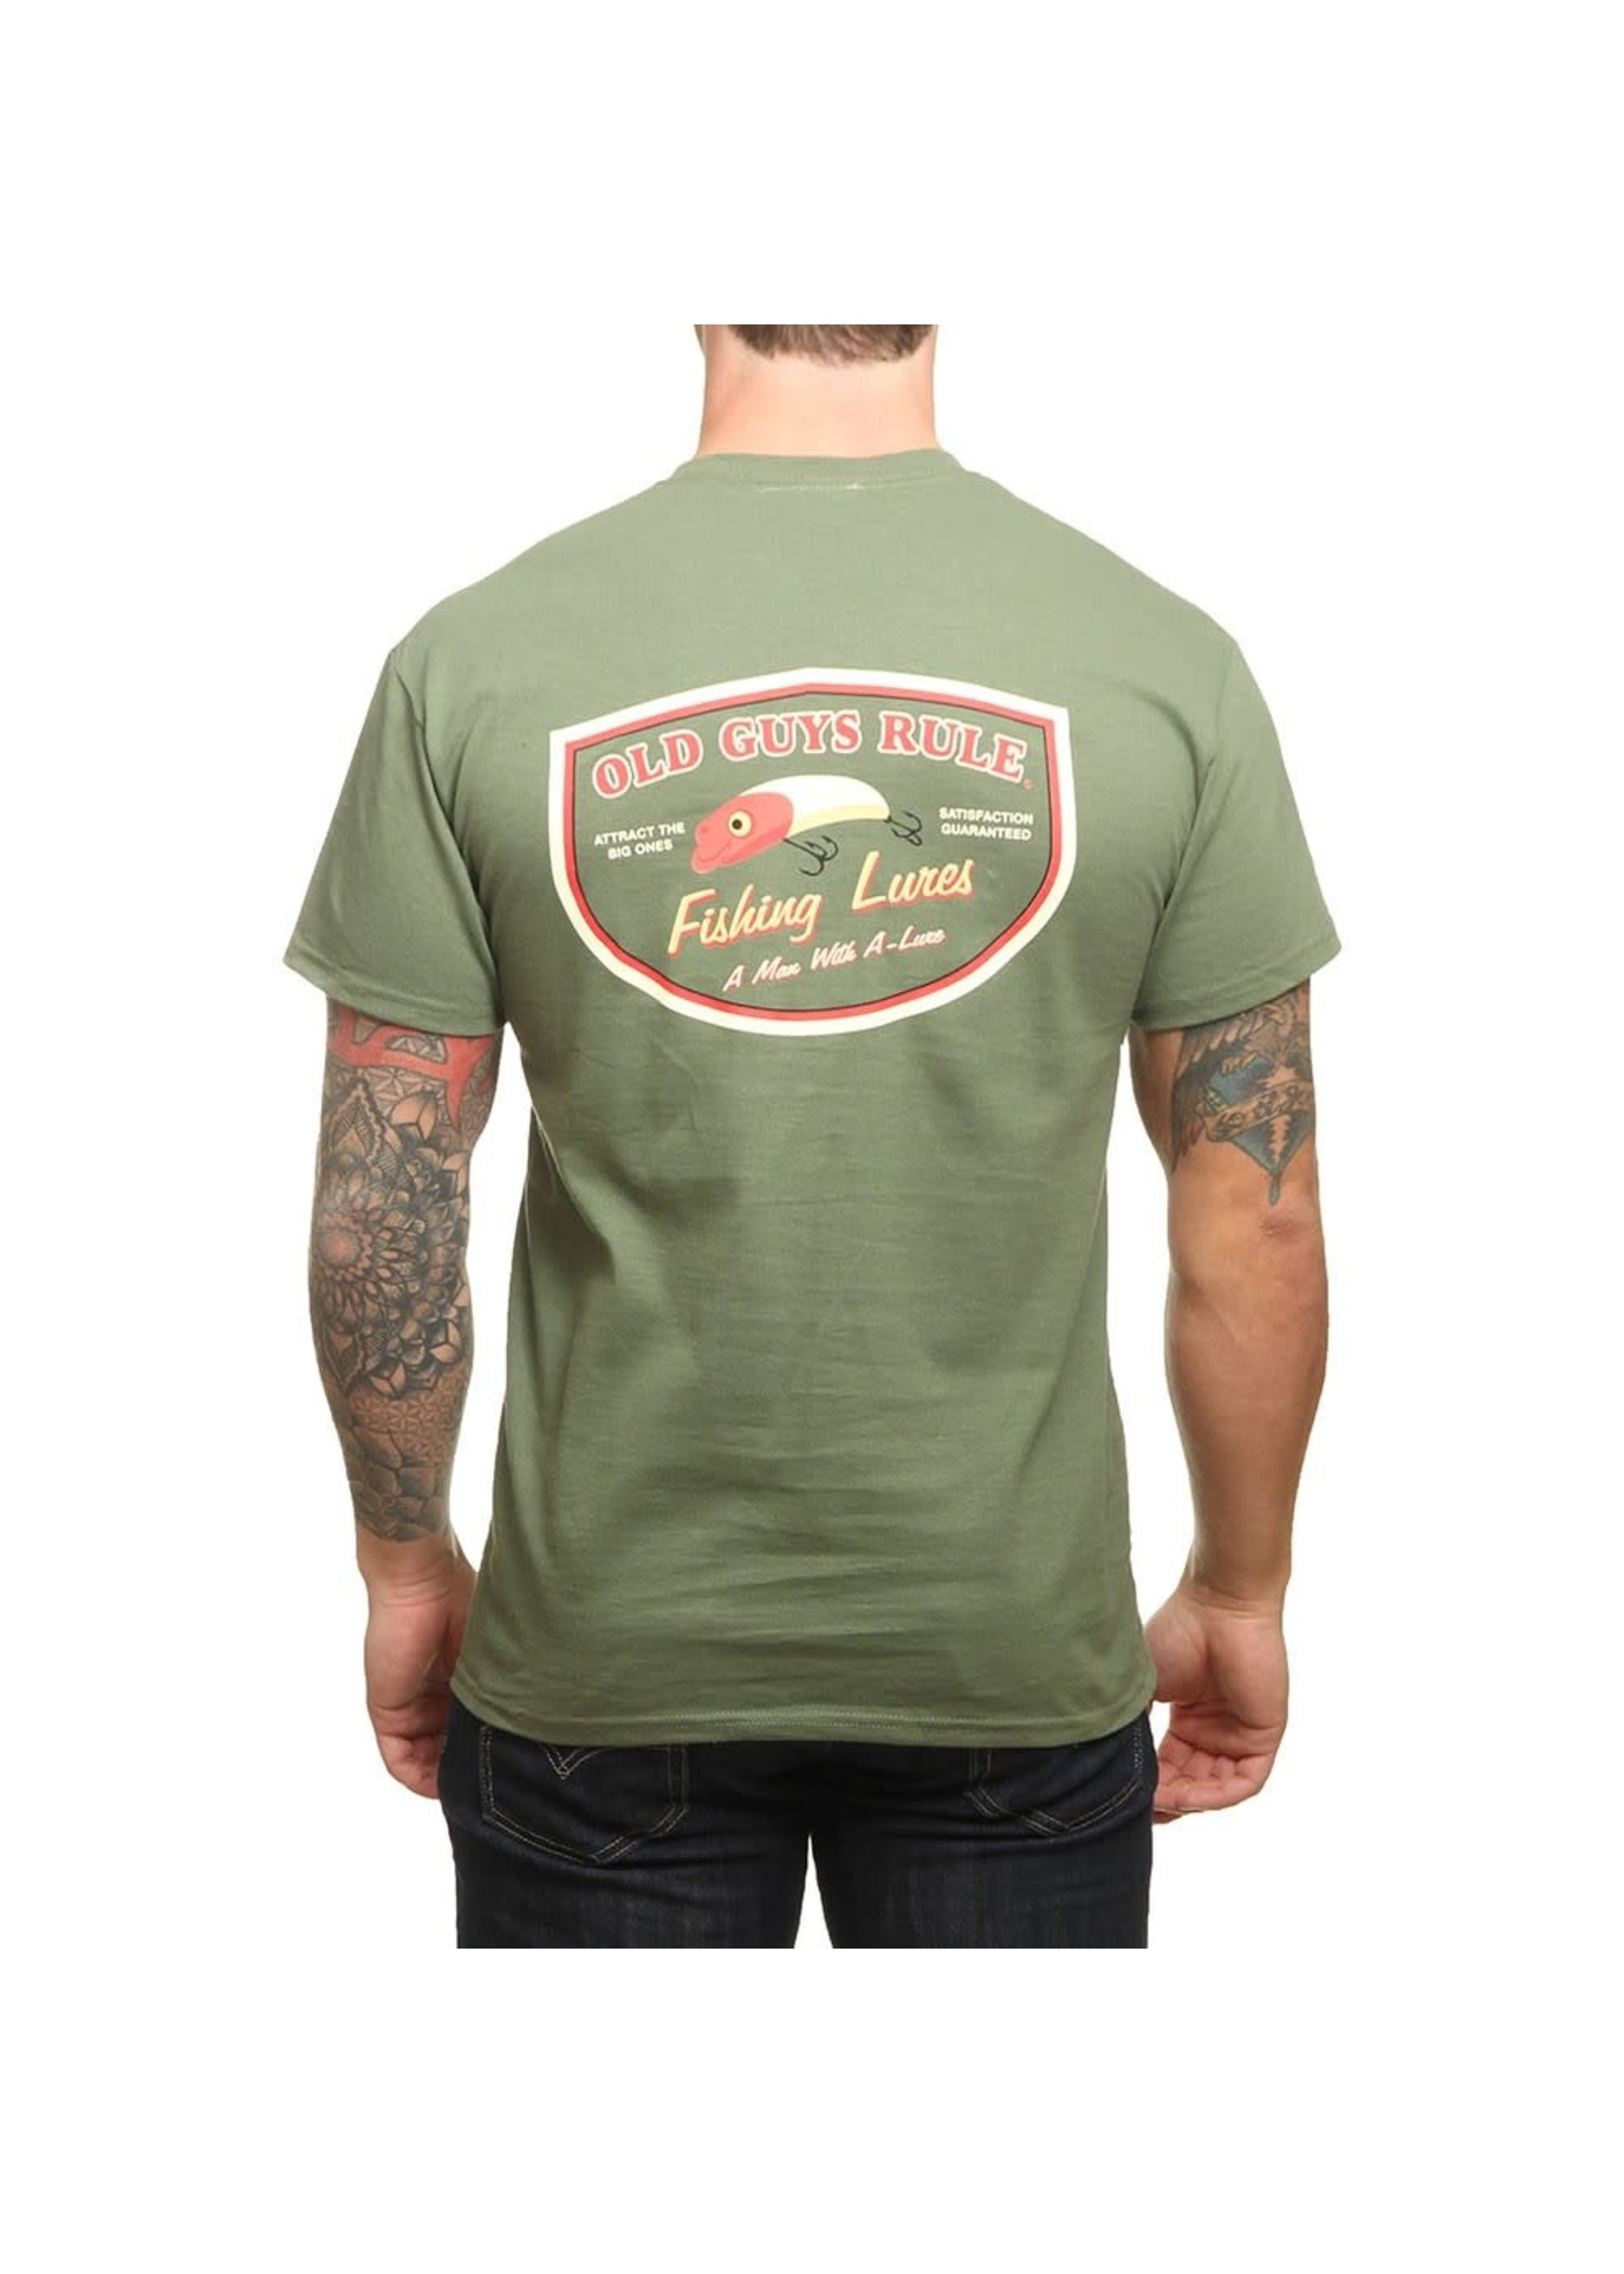 Old Guys Rule Old Guys Rule T-Shirt - Man with A-Lure L